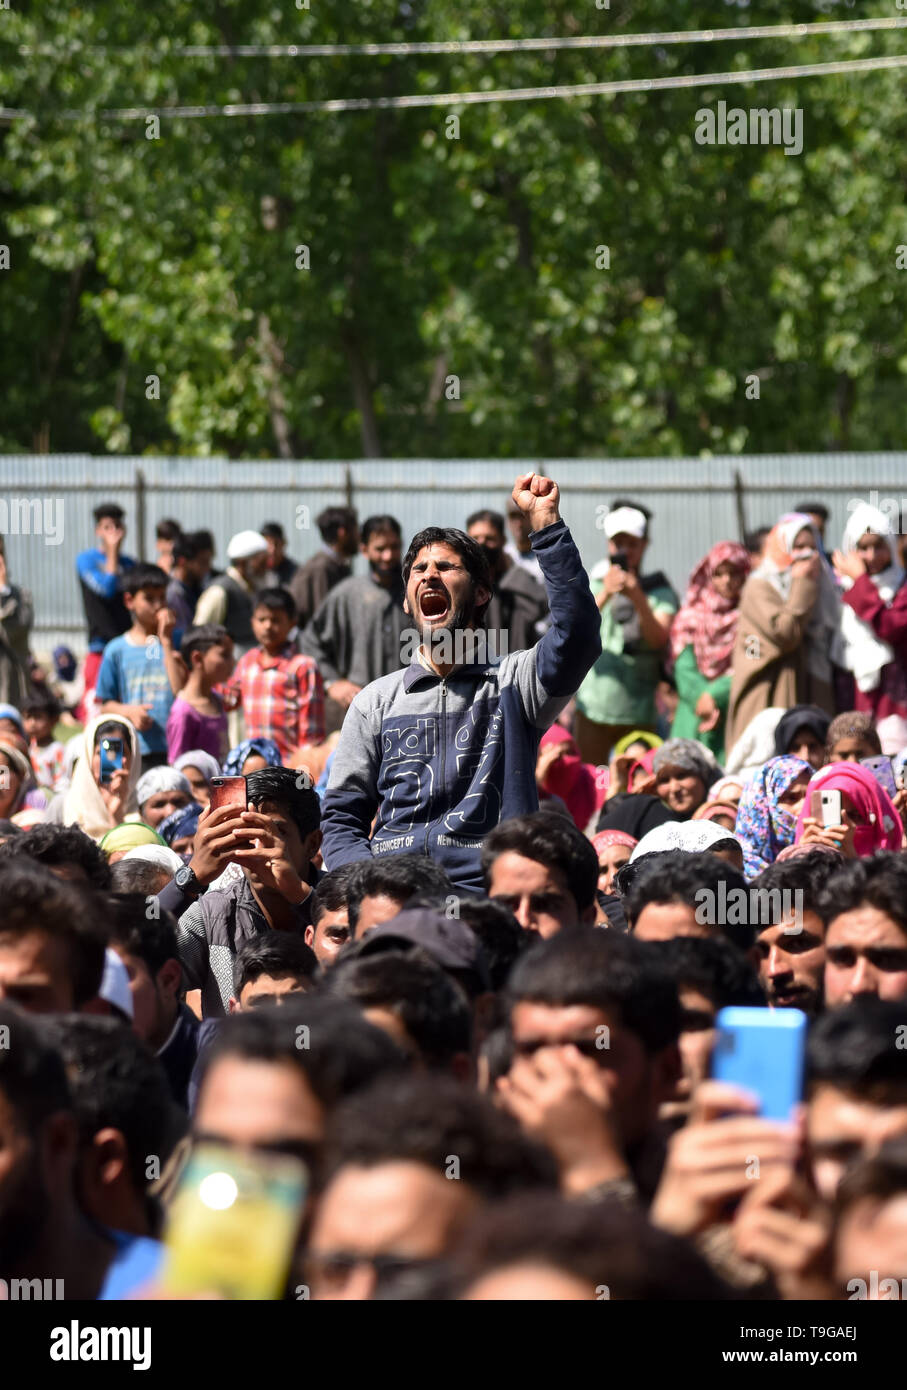 A Kashmiri villager seen shouting pro freedom slogans during the funeral ceremony of slain Kashmiri Rebel Showkat Ahmed at his residence in Pulwama, South of Srinagar. Thousands attended the funeral ceremony of slain Showkat Ahmed Dar at his residence in Panzgam Pulwama. Showkat was among the three Kashmiri Rebels killed in a gunfight in Pulwama. - Stock Image